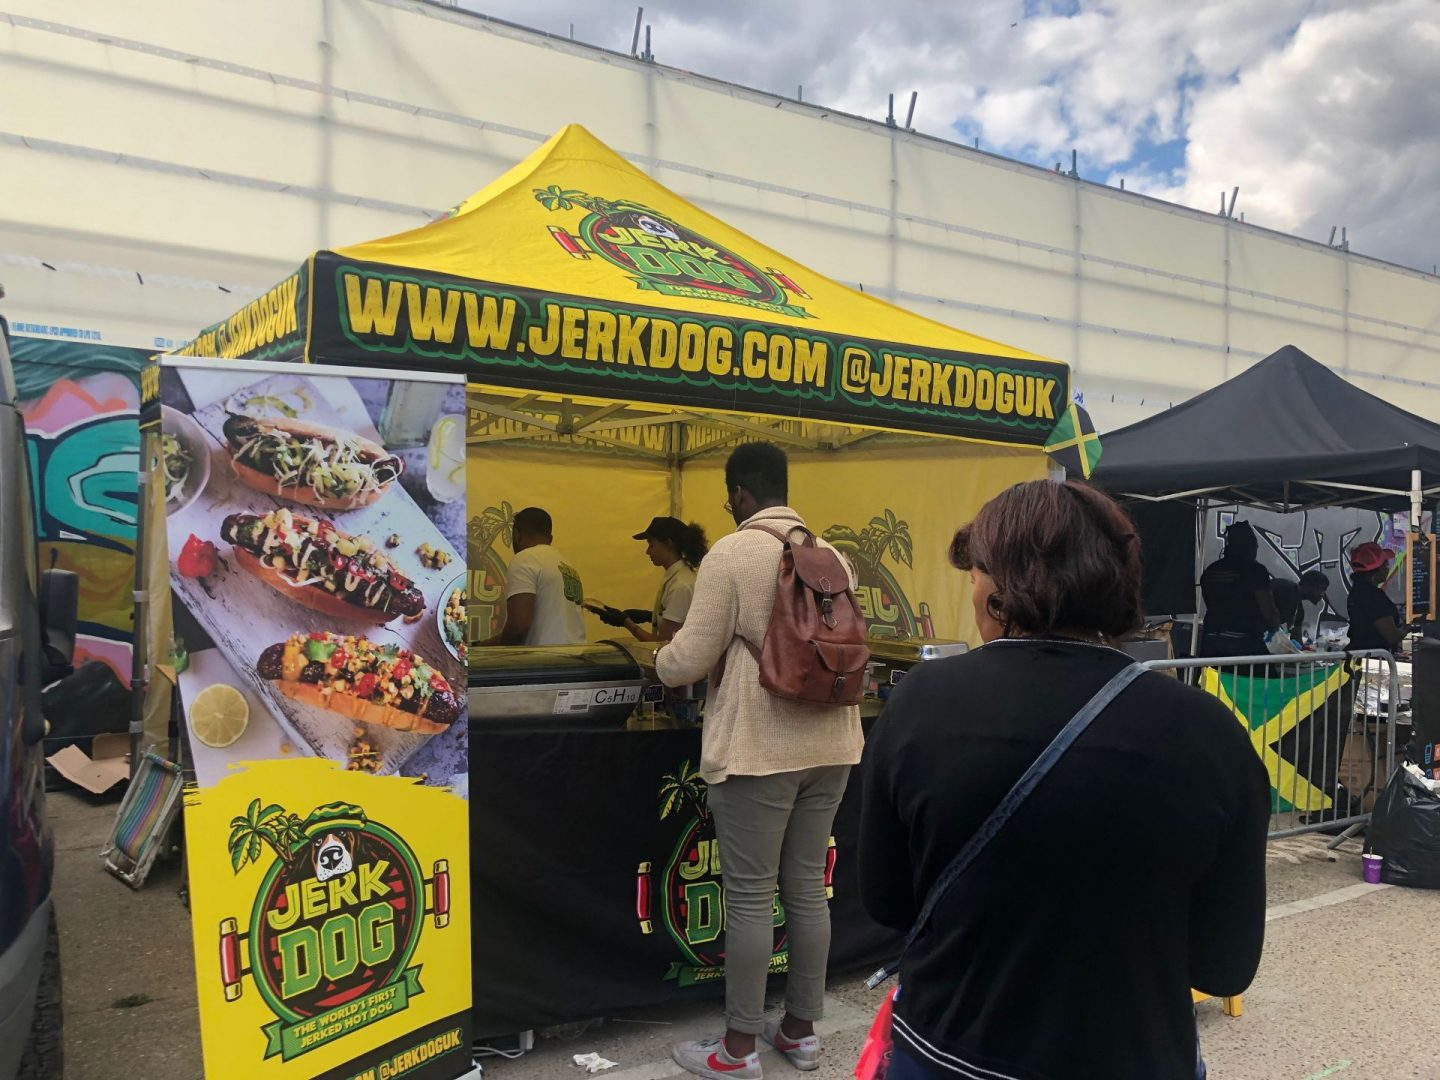 London jerk festival hotdogs